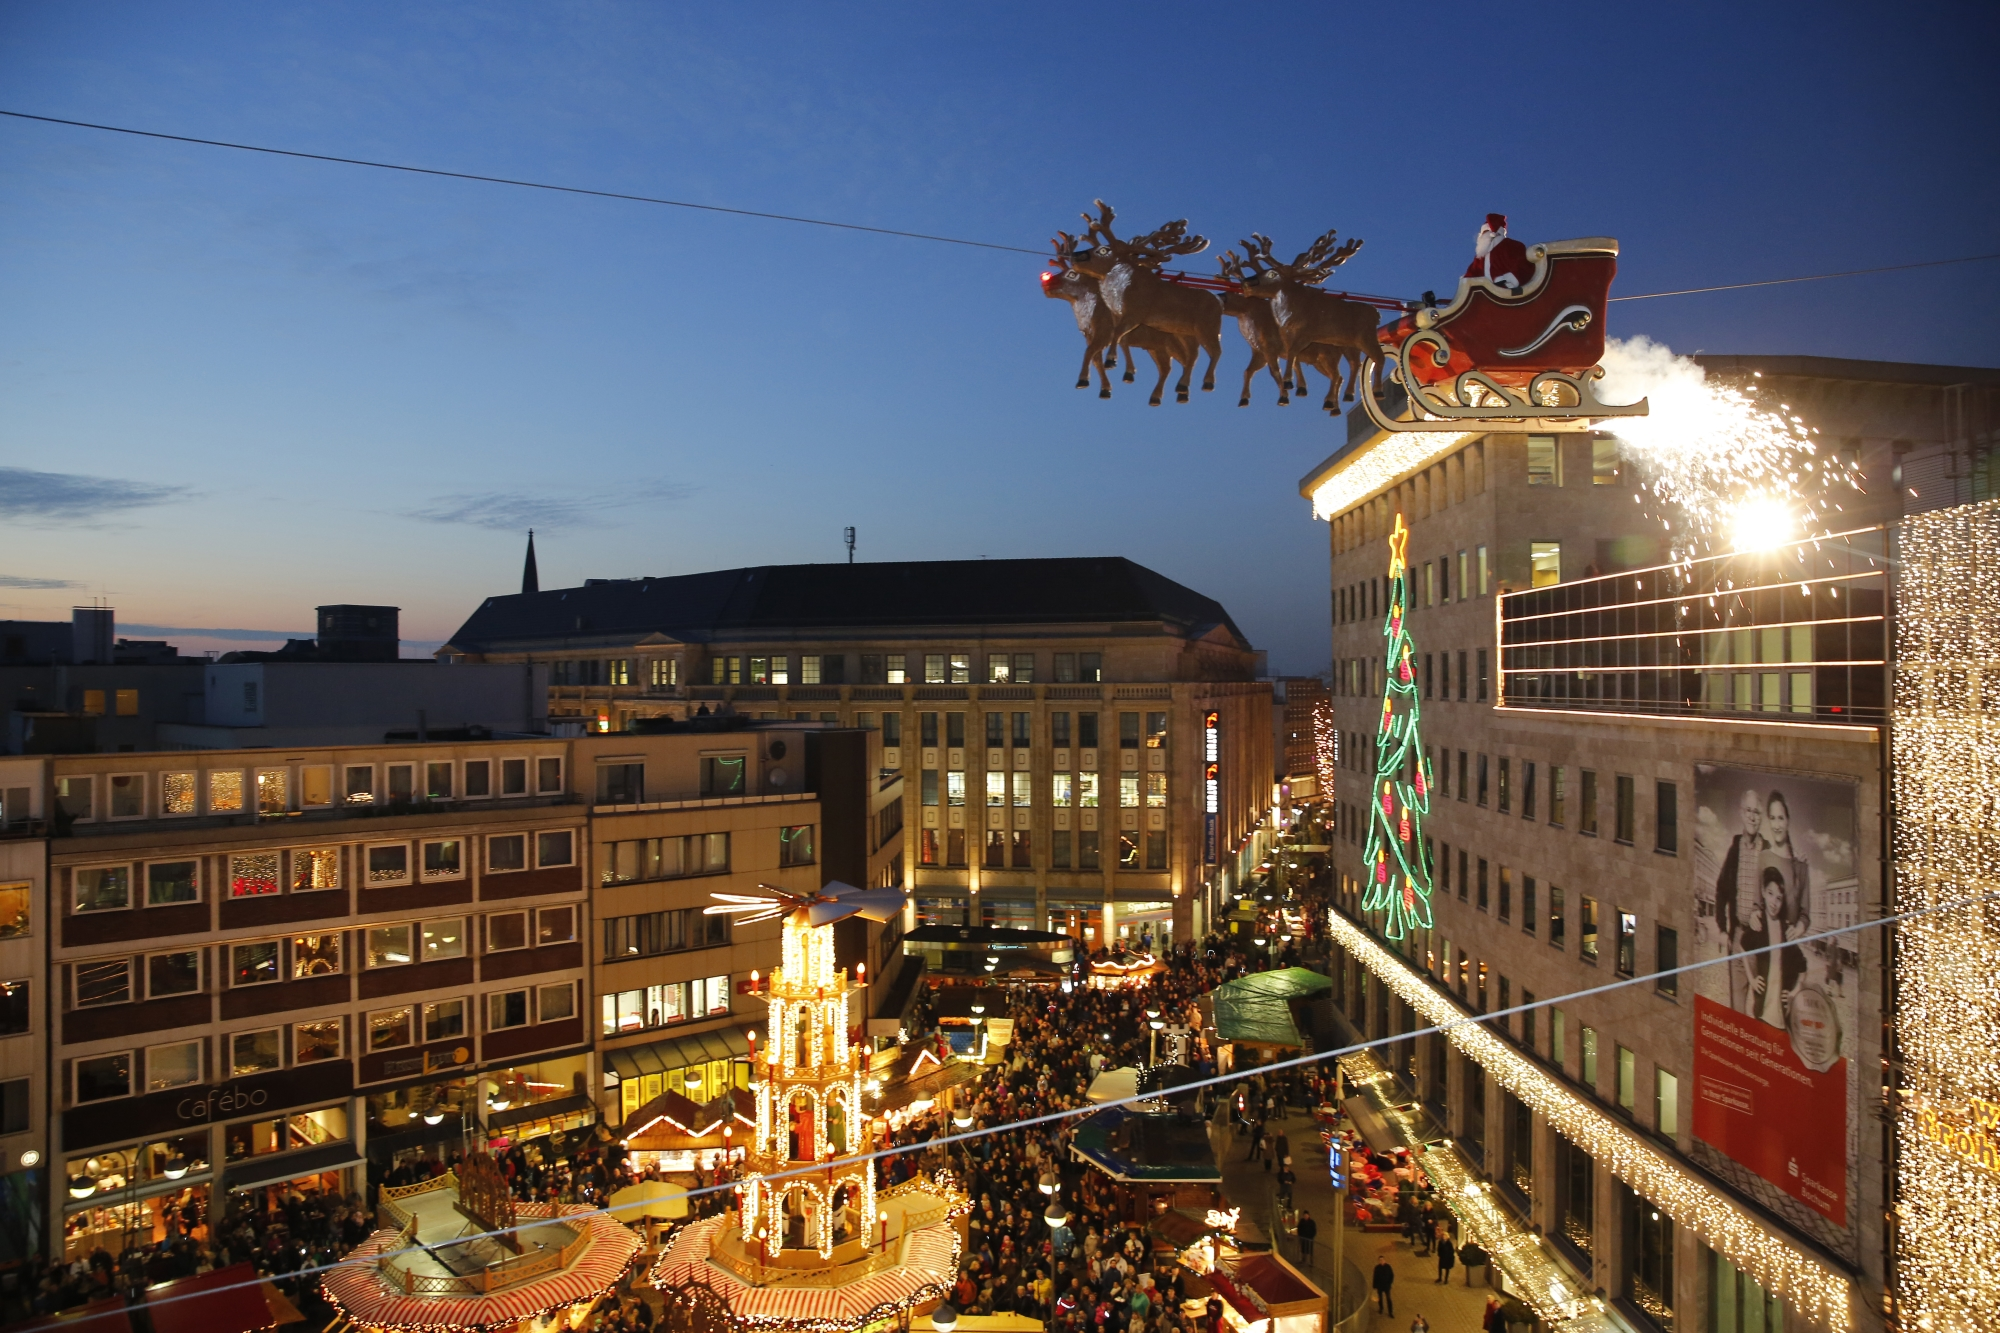 5 unique christmas markets in germany recommend - Christmas Market Germany